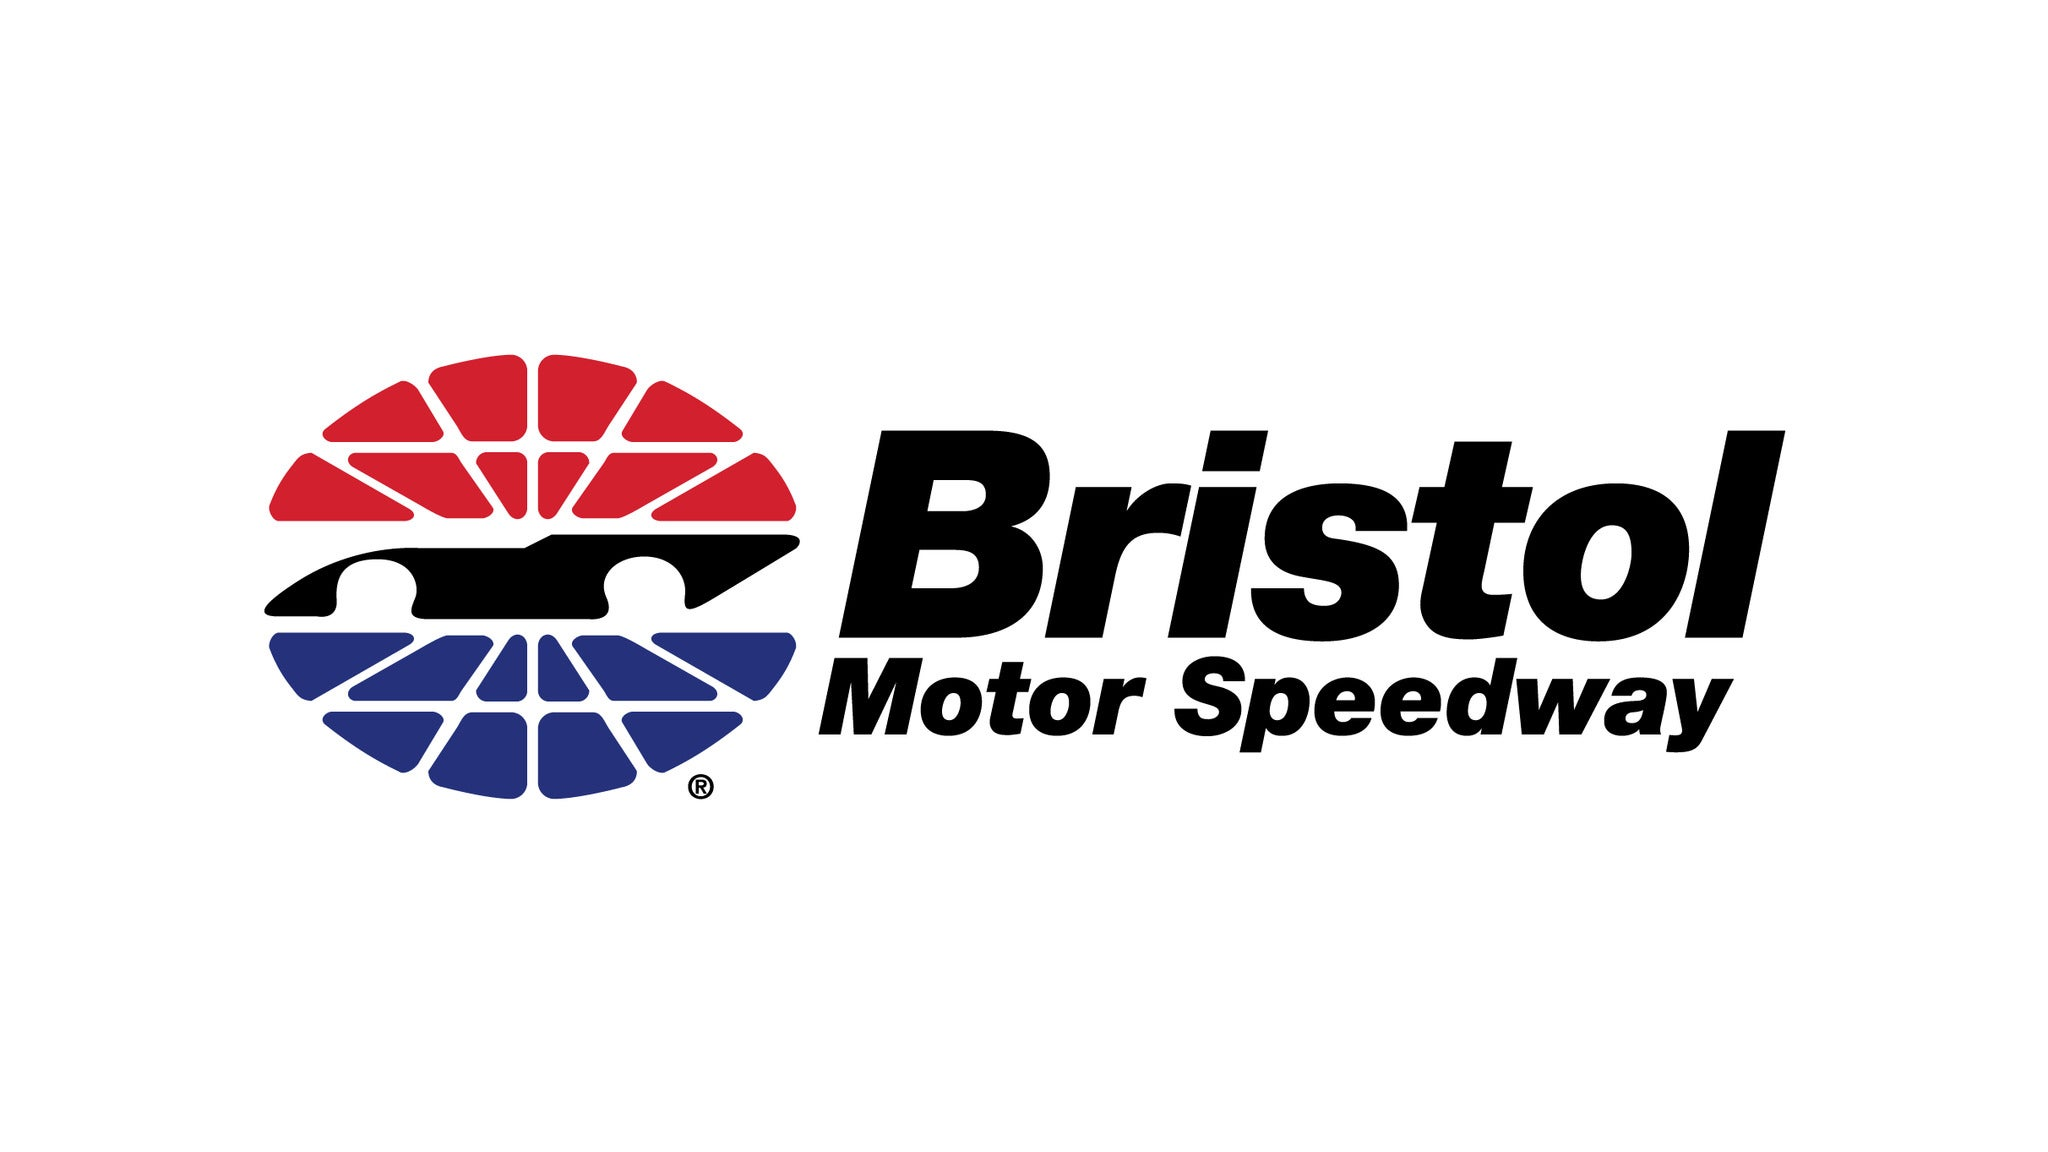 2017 August Weekend Package at Bristol Motor Speedway